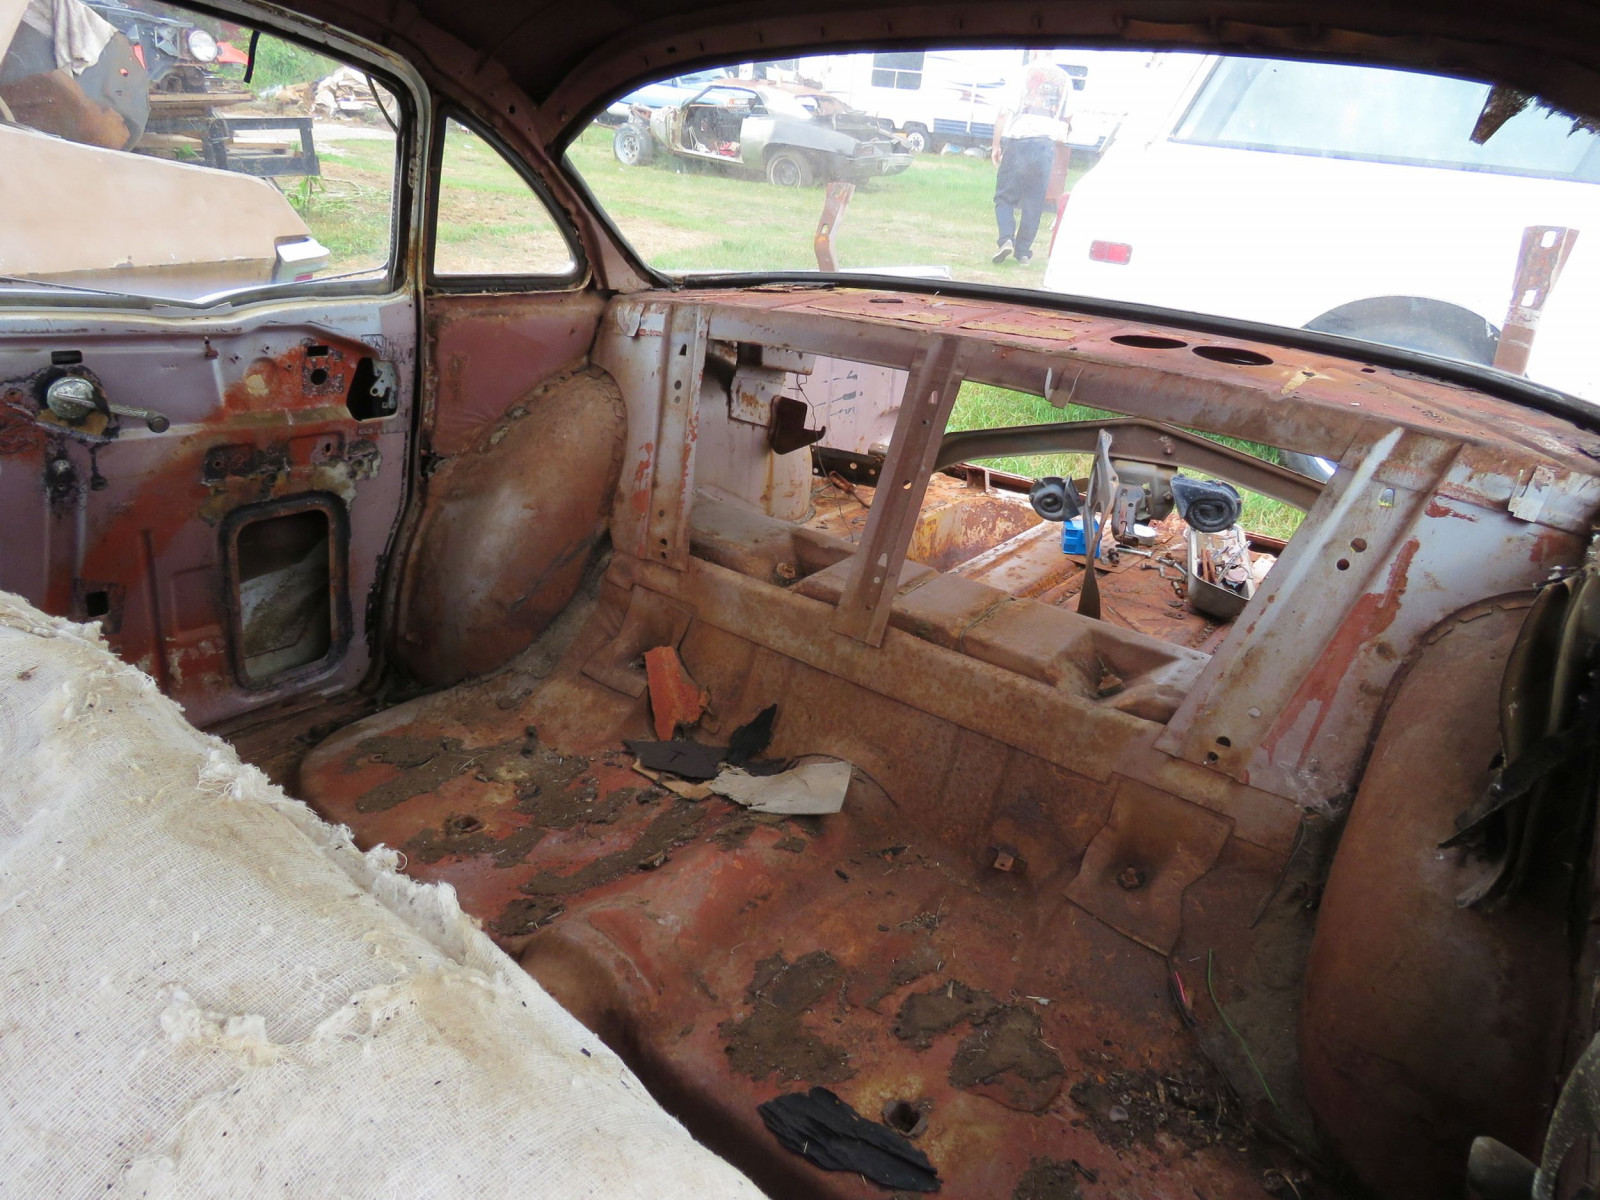 1957 Chevrolet 4dr Sedan for Rod or Restore - Image 9